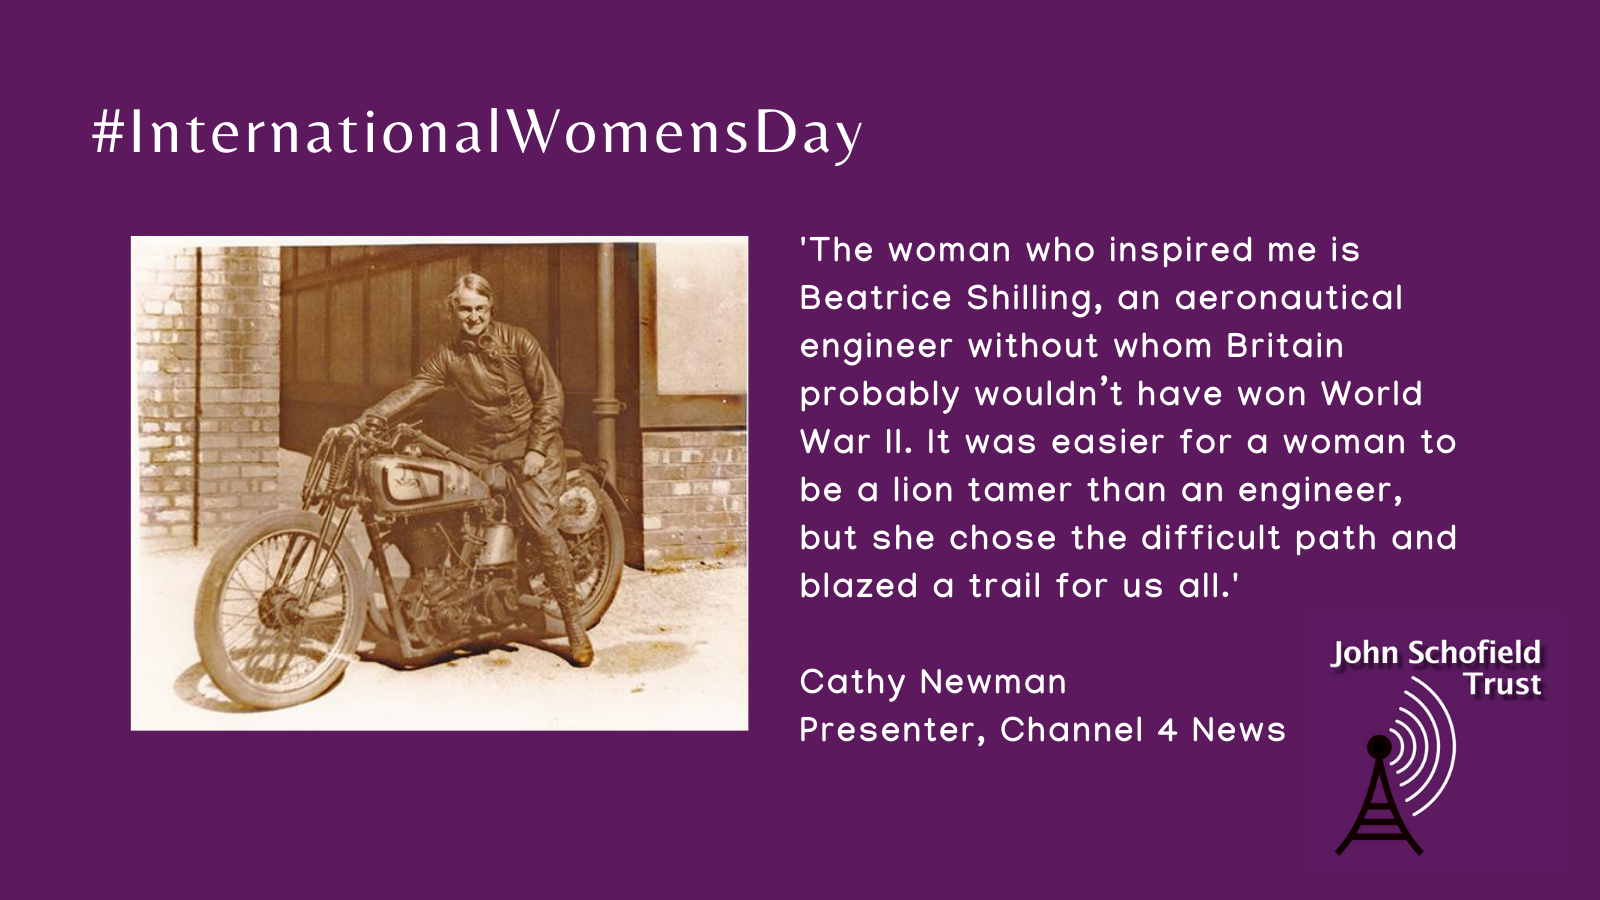 Cathy Newman's inspirational woman slide for #IWD